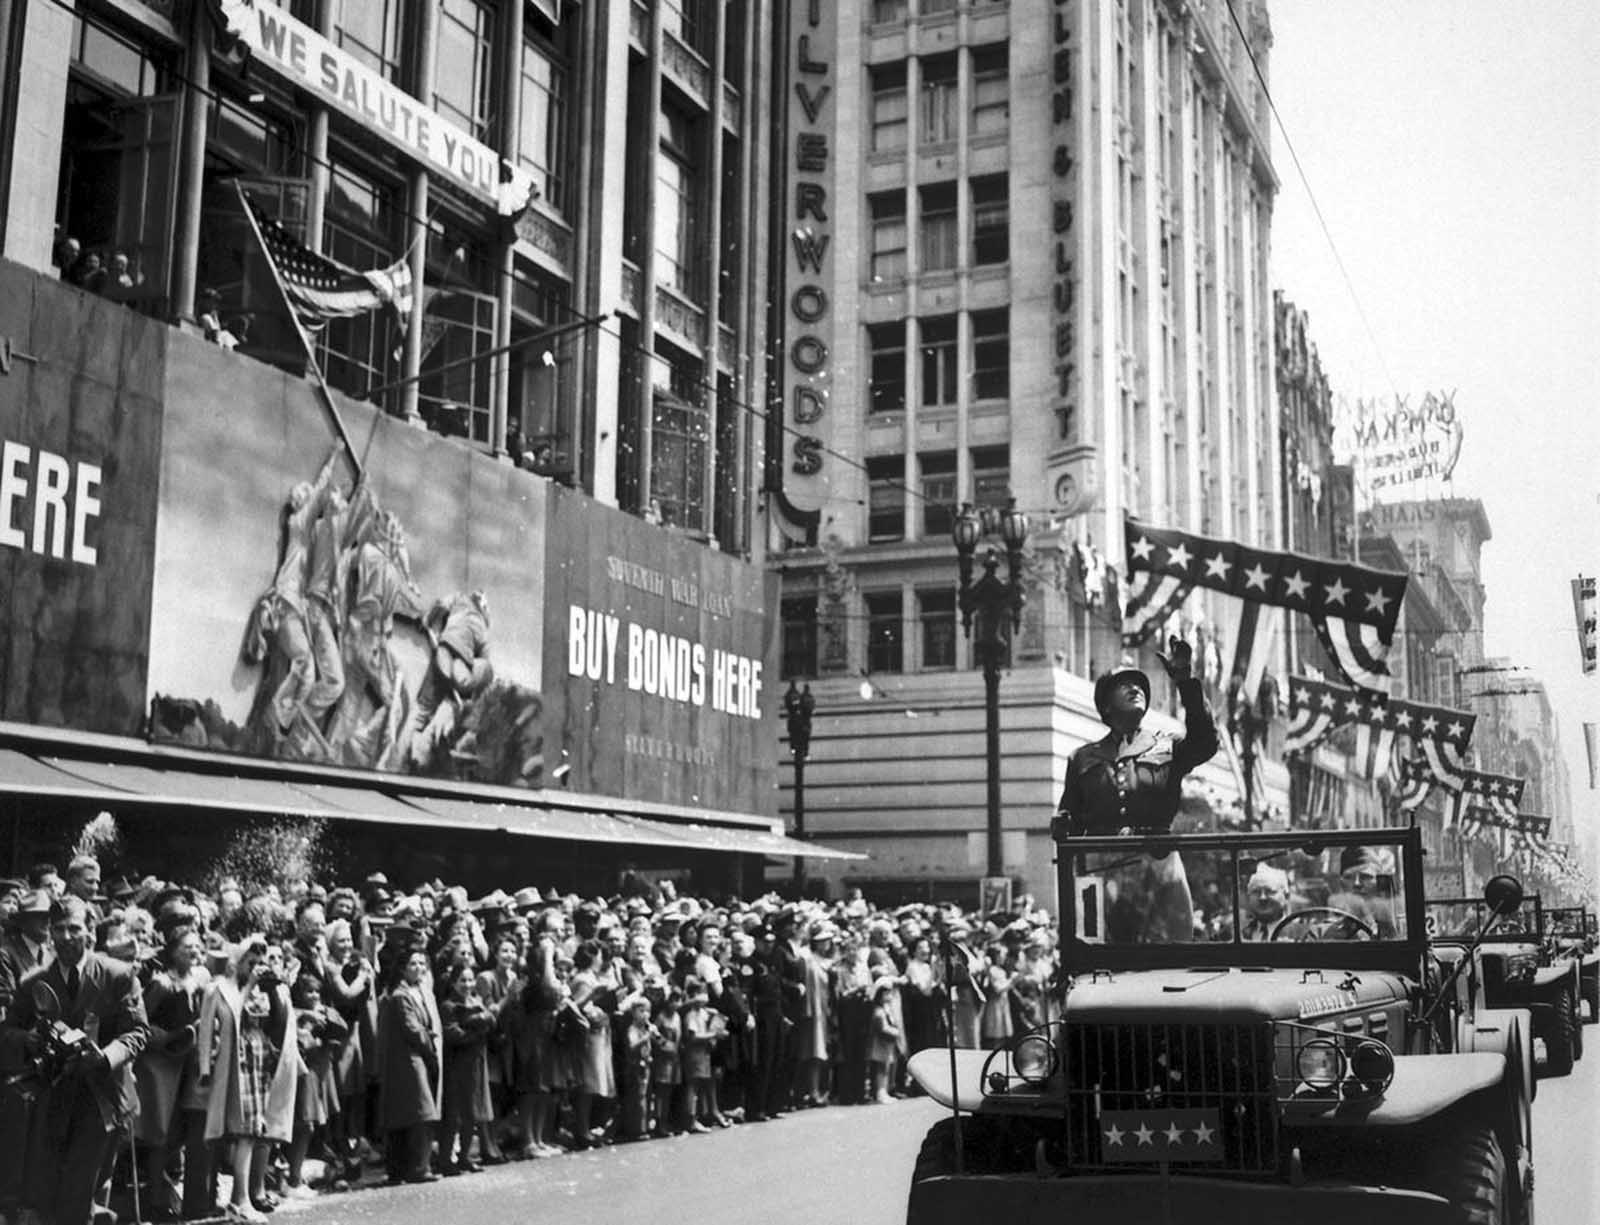 U.S. General George S. Patton acknowledges the cheers of thousands during a parade through downtown Los Angeles, California, on June 9, 1945. Shortly thereafter, Patton returned to Germany and controversy, as he advocated the employment of ex-Nazis in administrative positions in Bavaria; he was relieved of command of the 3rd Army and died of injuries from a traffic accident in December, after his return home. Joe Rosenthal's famous Iwo Jima flag-raising photograph is visible on the war bonds billboard.